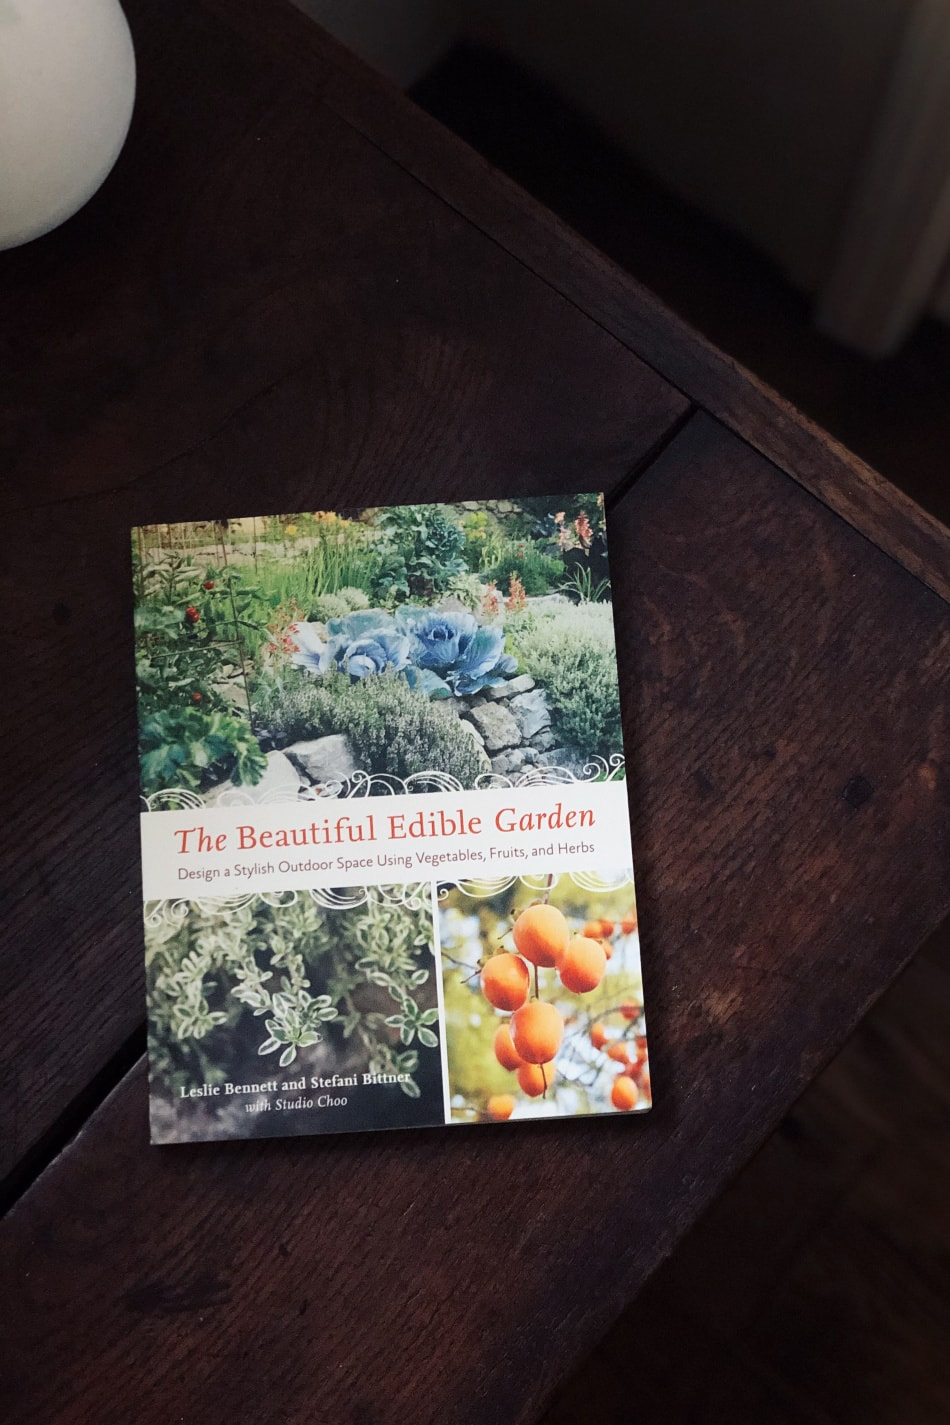 The Beautiful Edible Garden book on a table